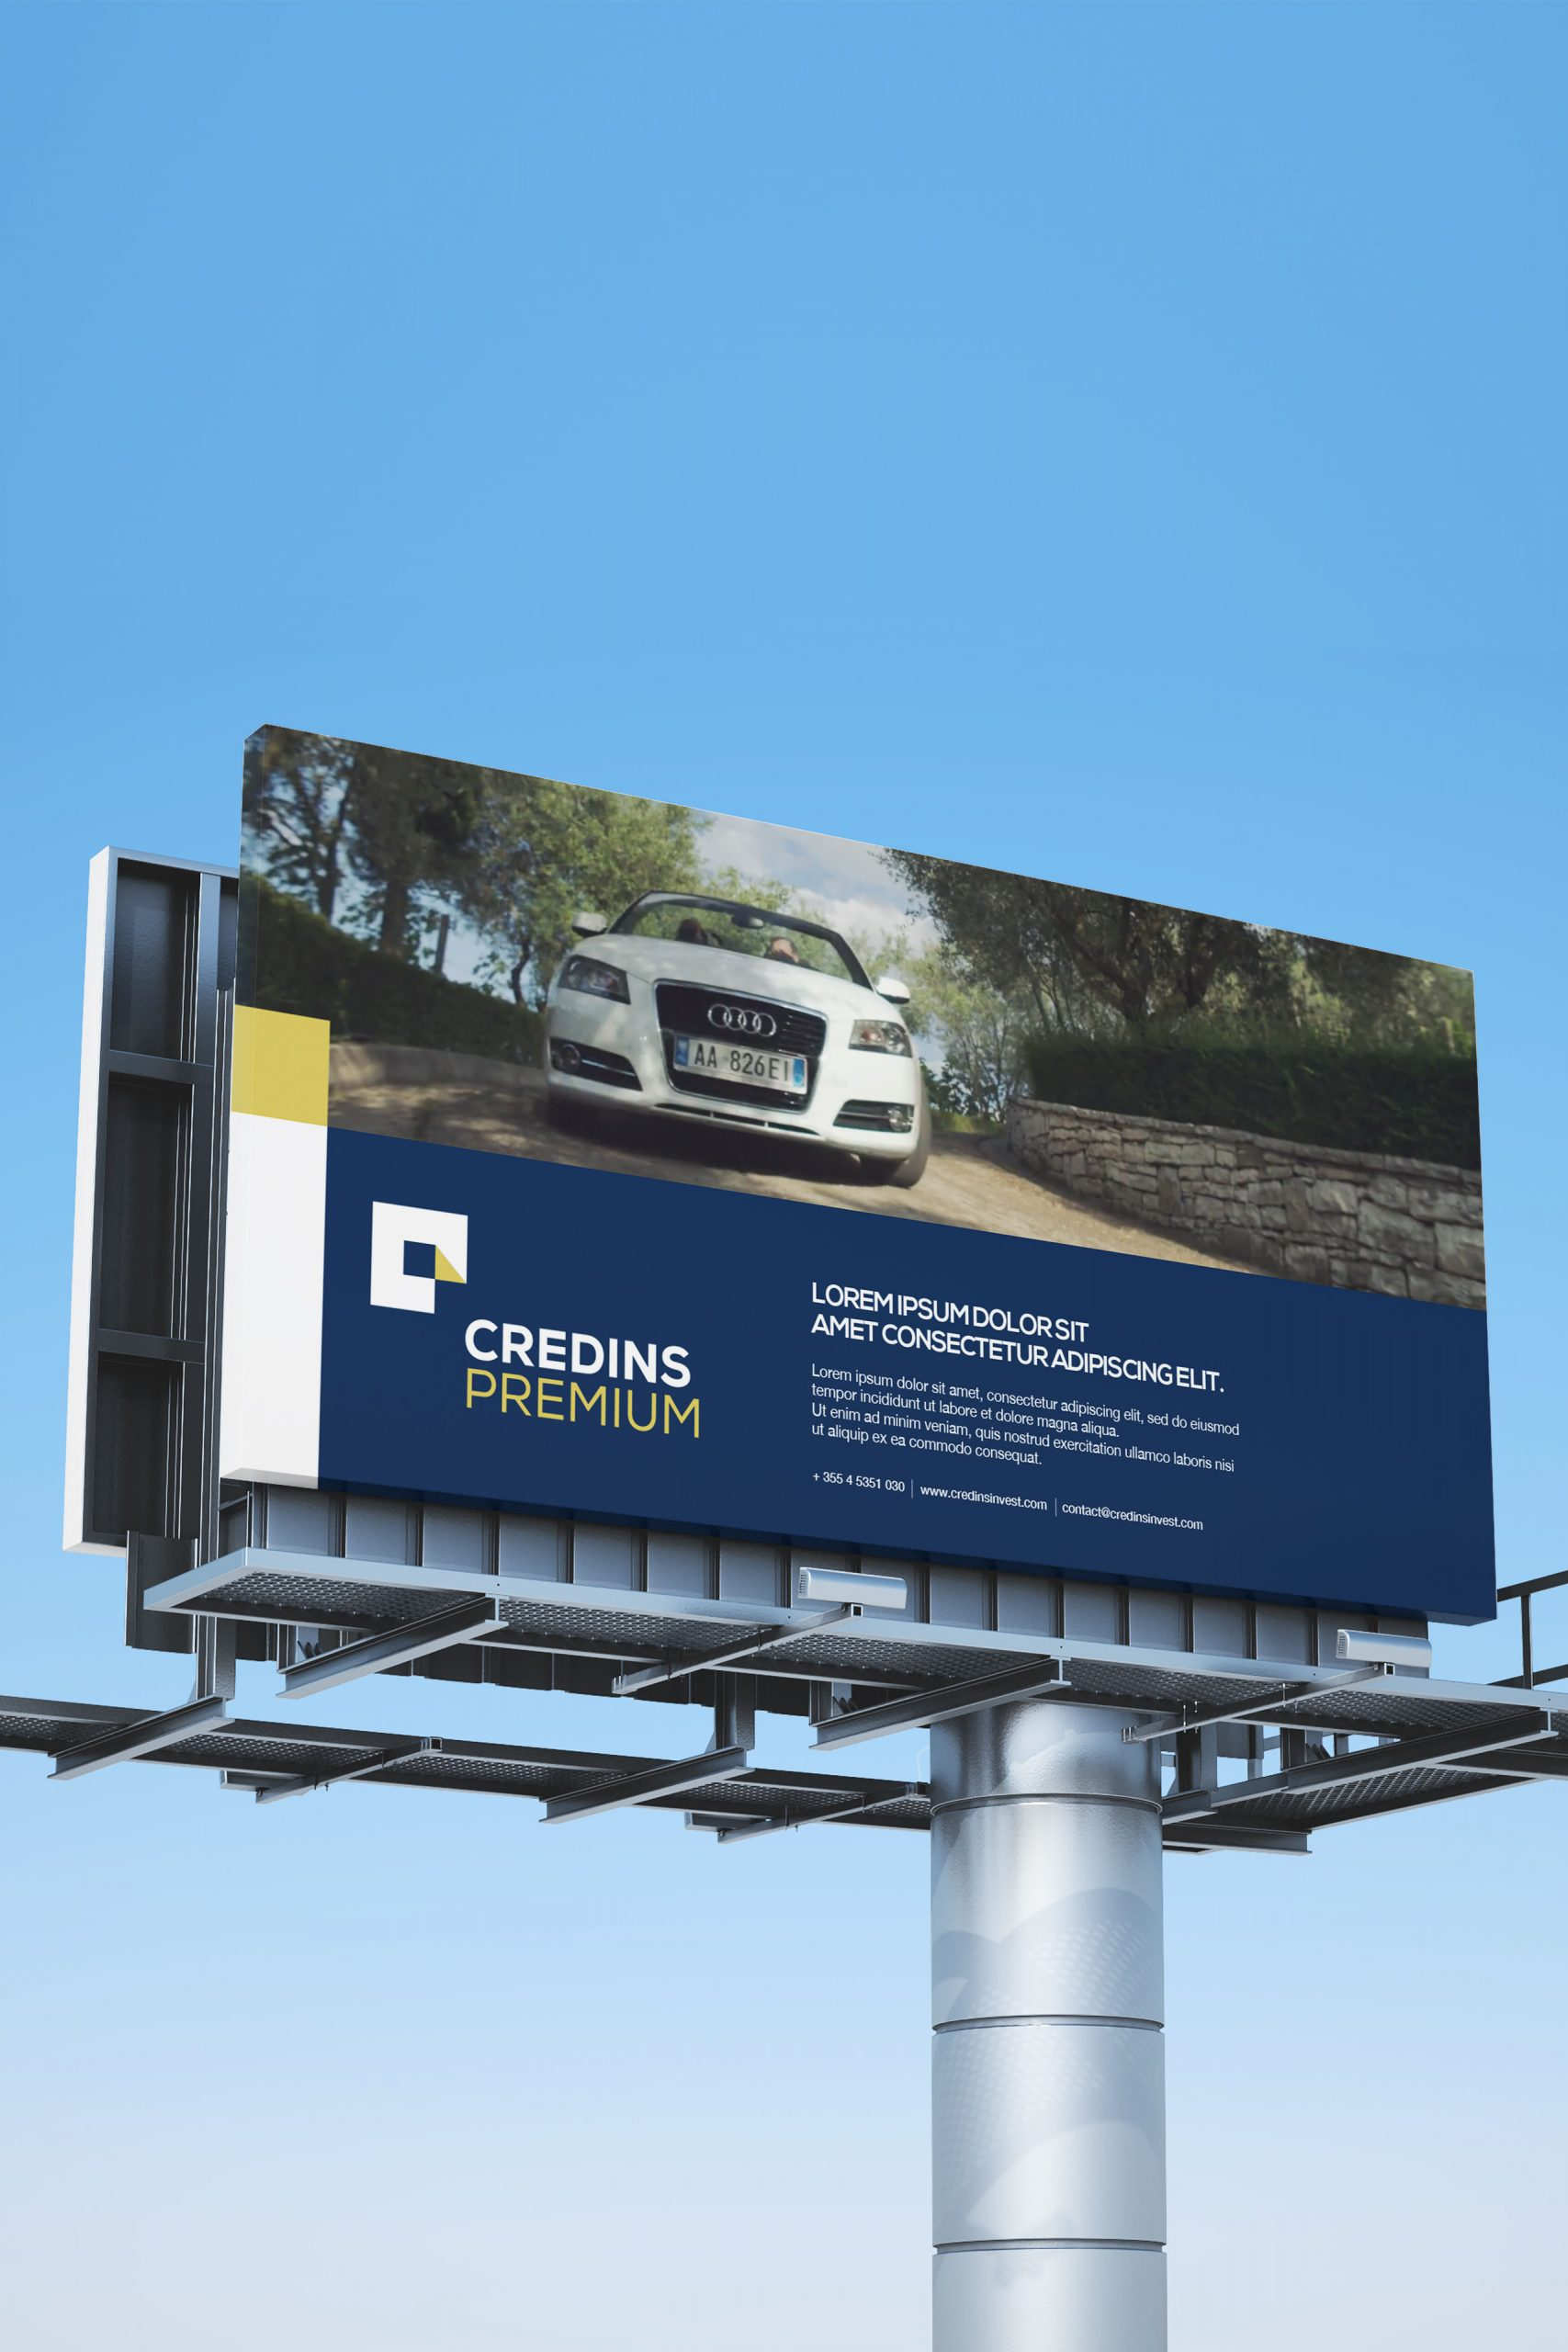 Credins Invest Project Img 13 - Vatra Agency / Founder & CEO Gerton Bejo